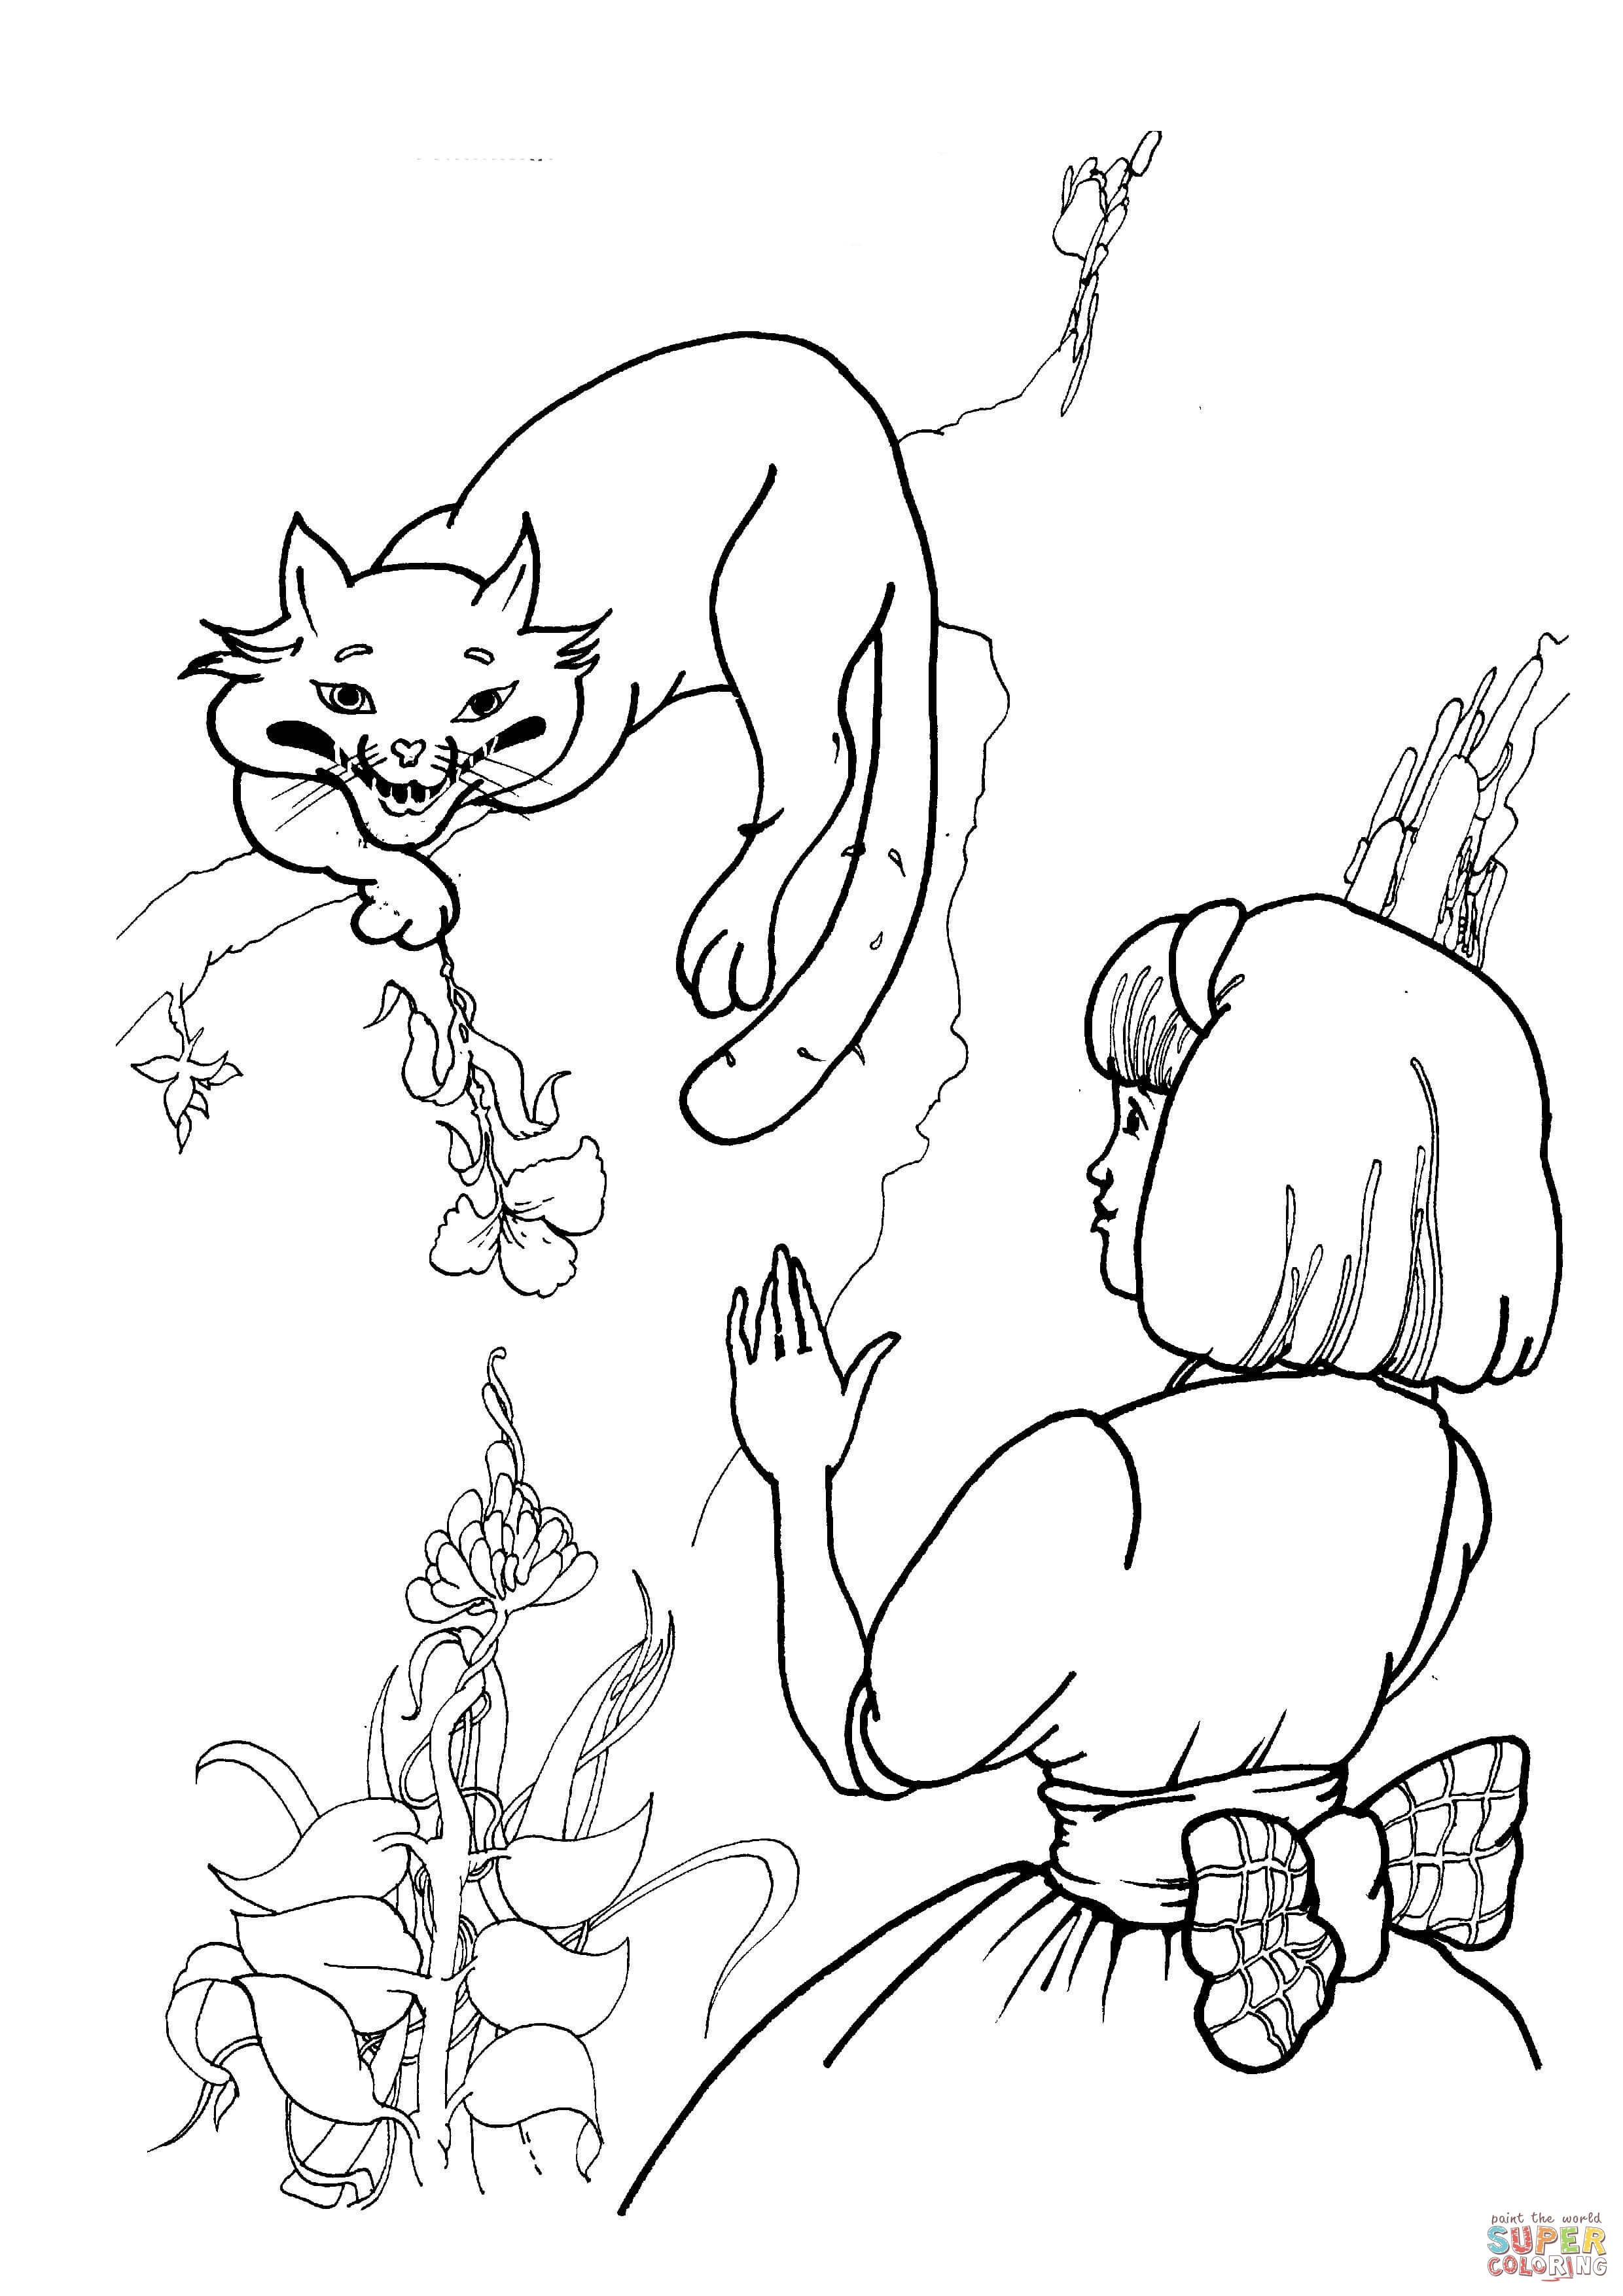 Alice In Wonderland Cheshire Cat Drawing at GetDrawings.com   Free ...